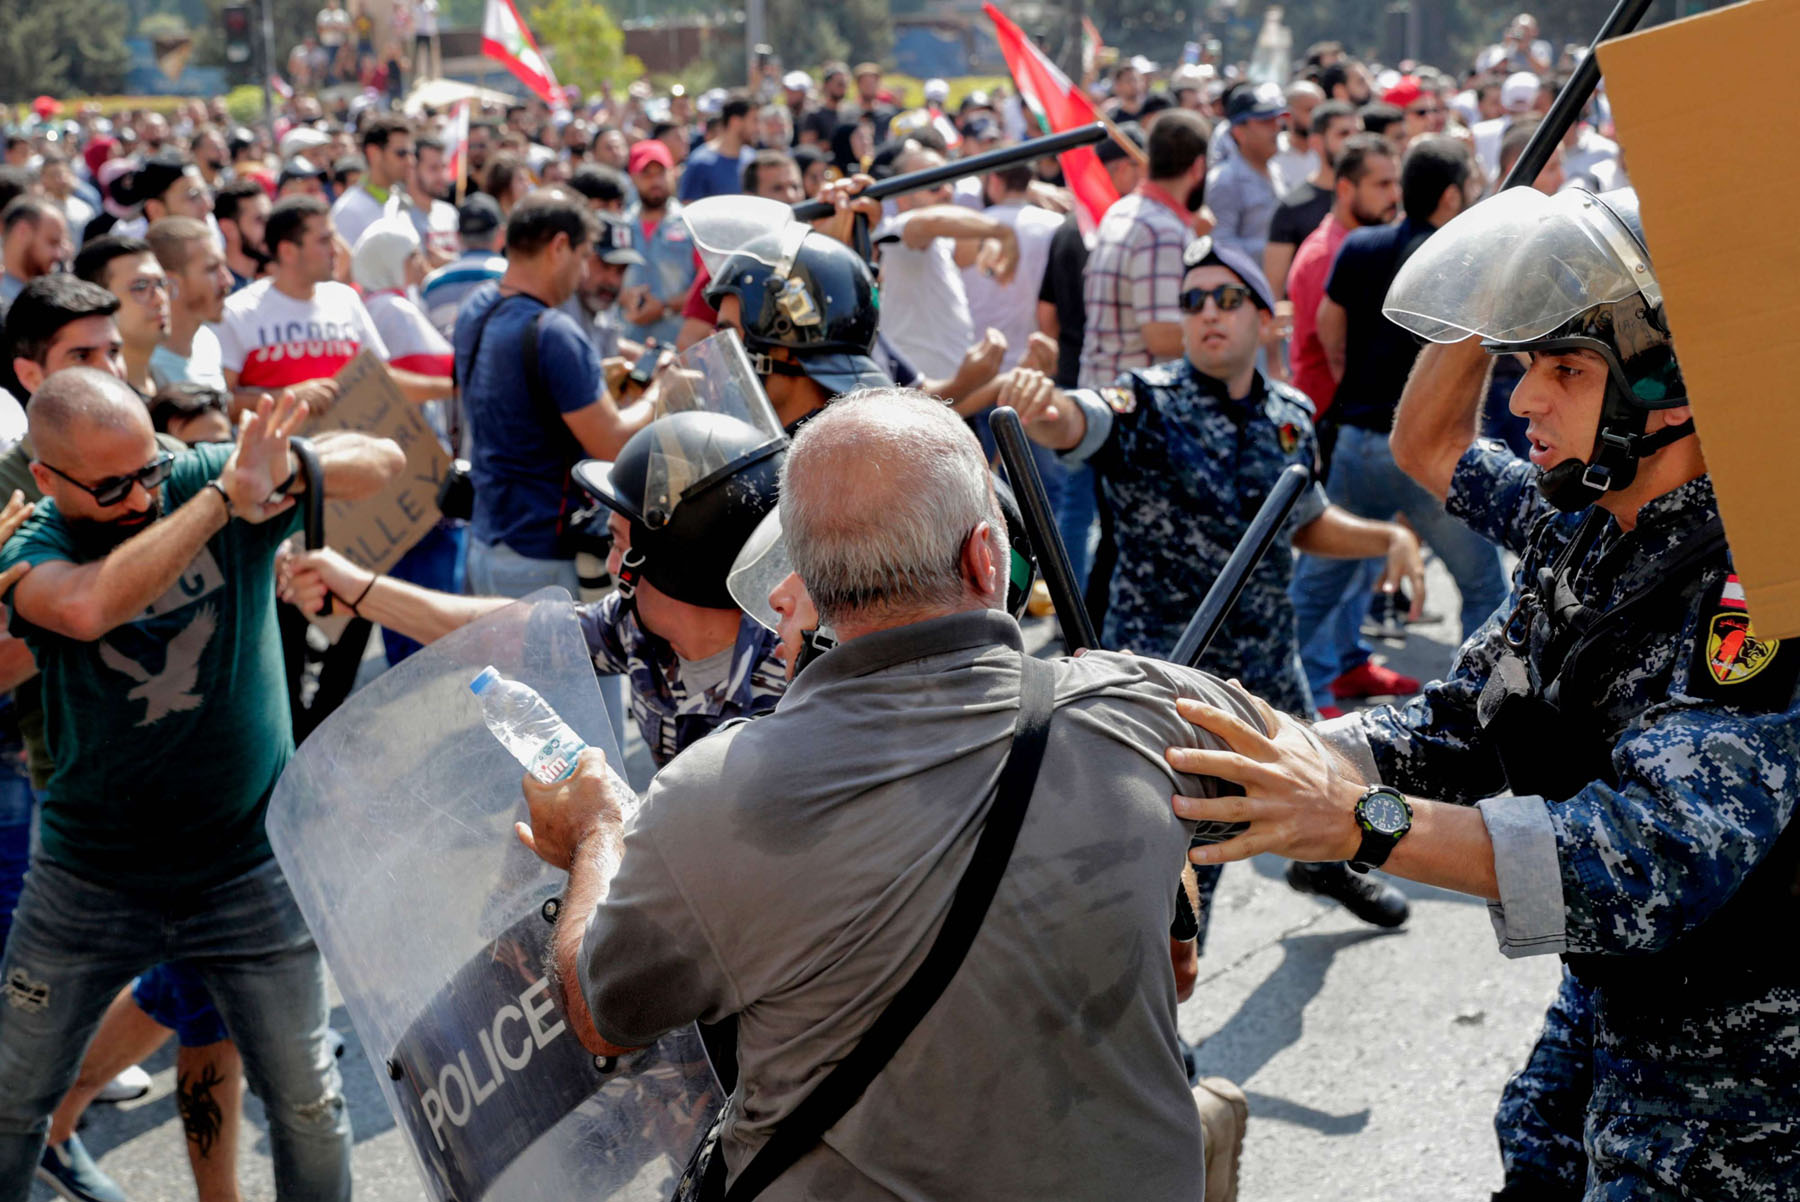 Challenges and frustrations. Lebanese protesters clash with riot policemen as they try to break through security barriers in front of the cabinet office in central Beirut's Martyr Square, September 29. (AFP)